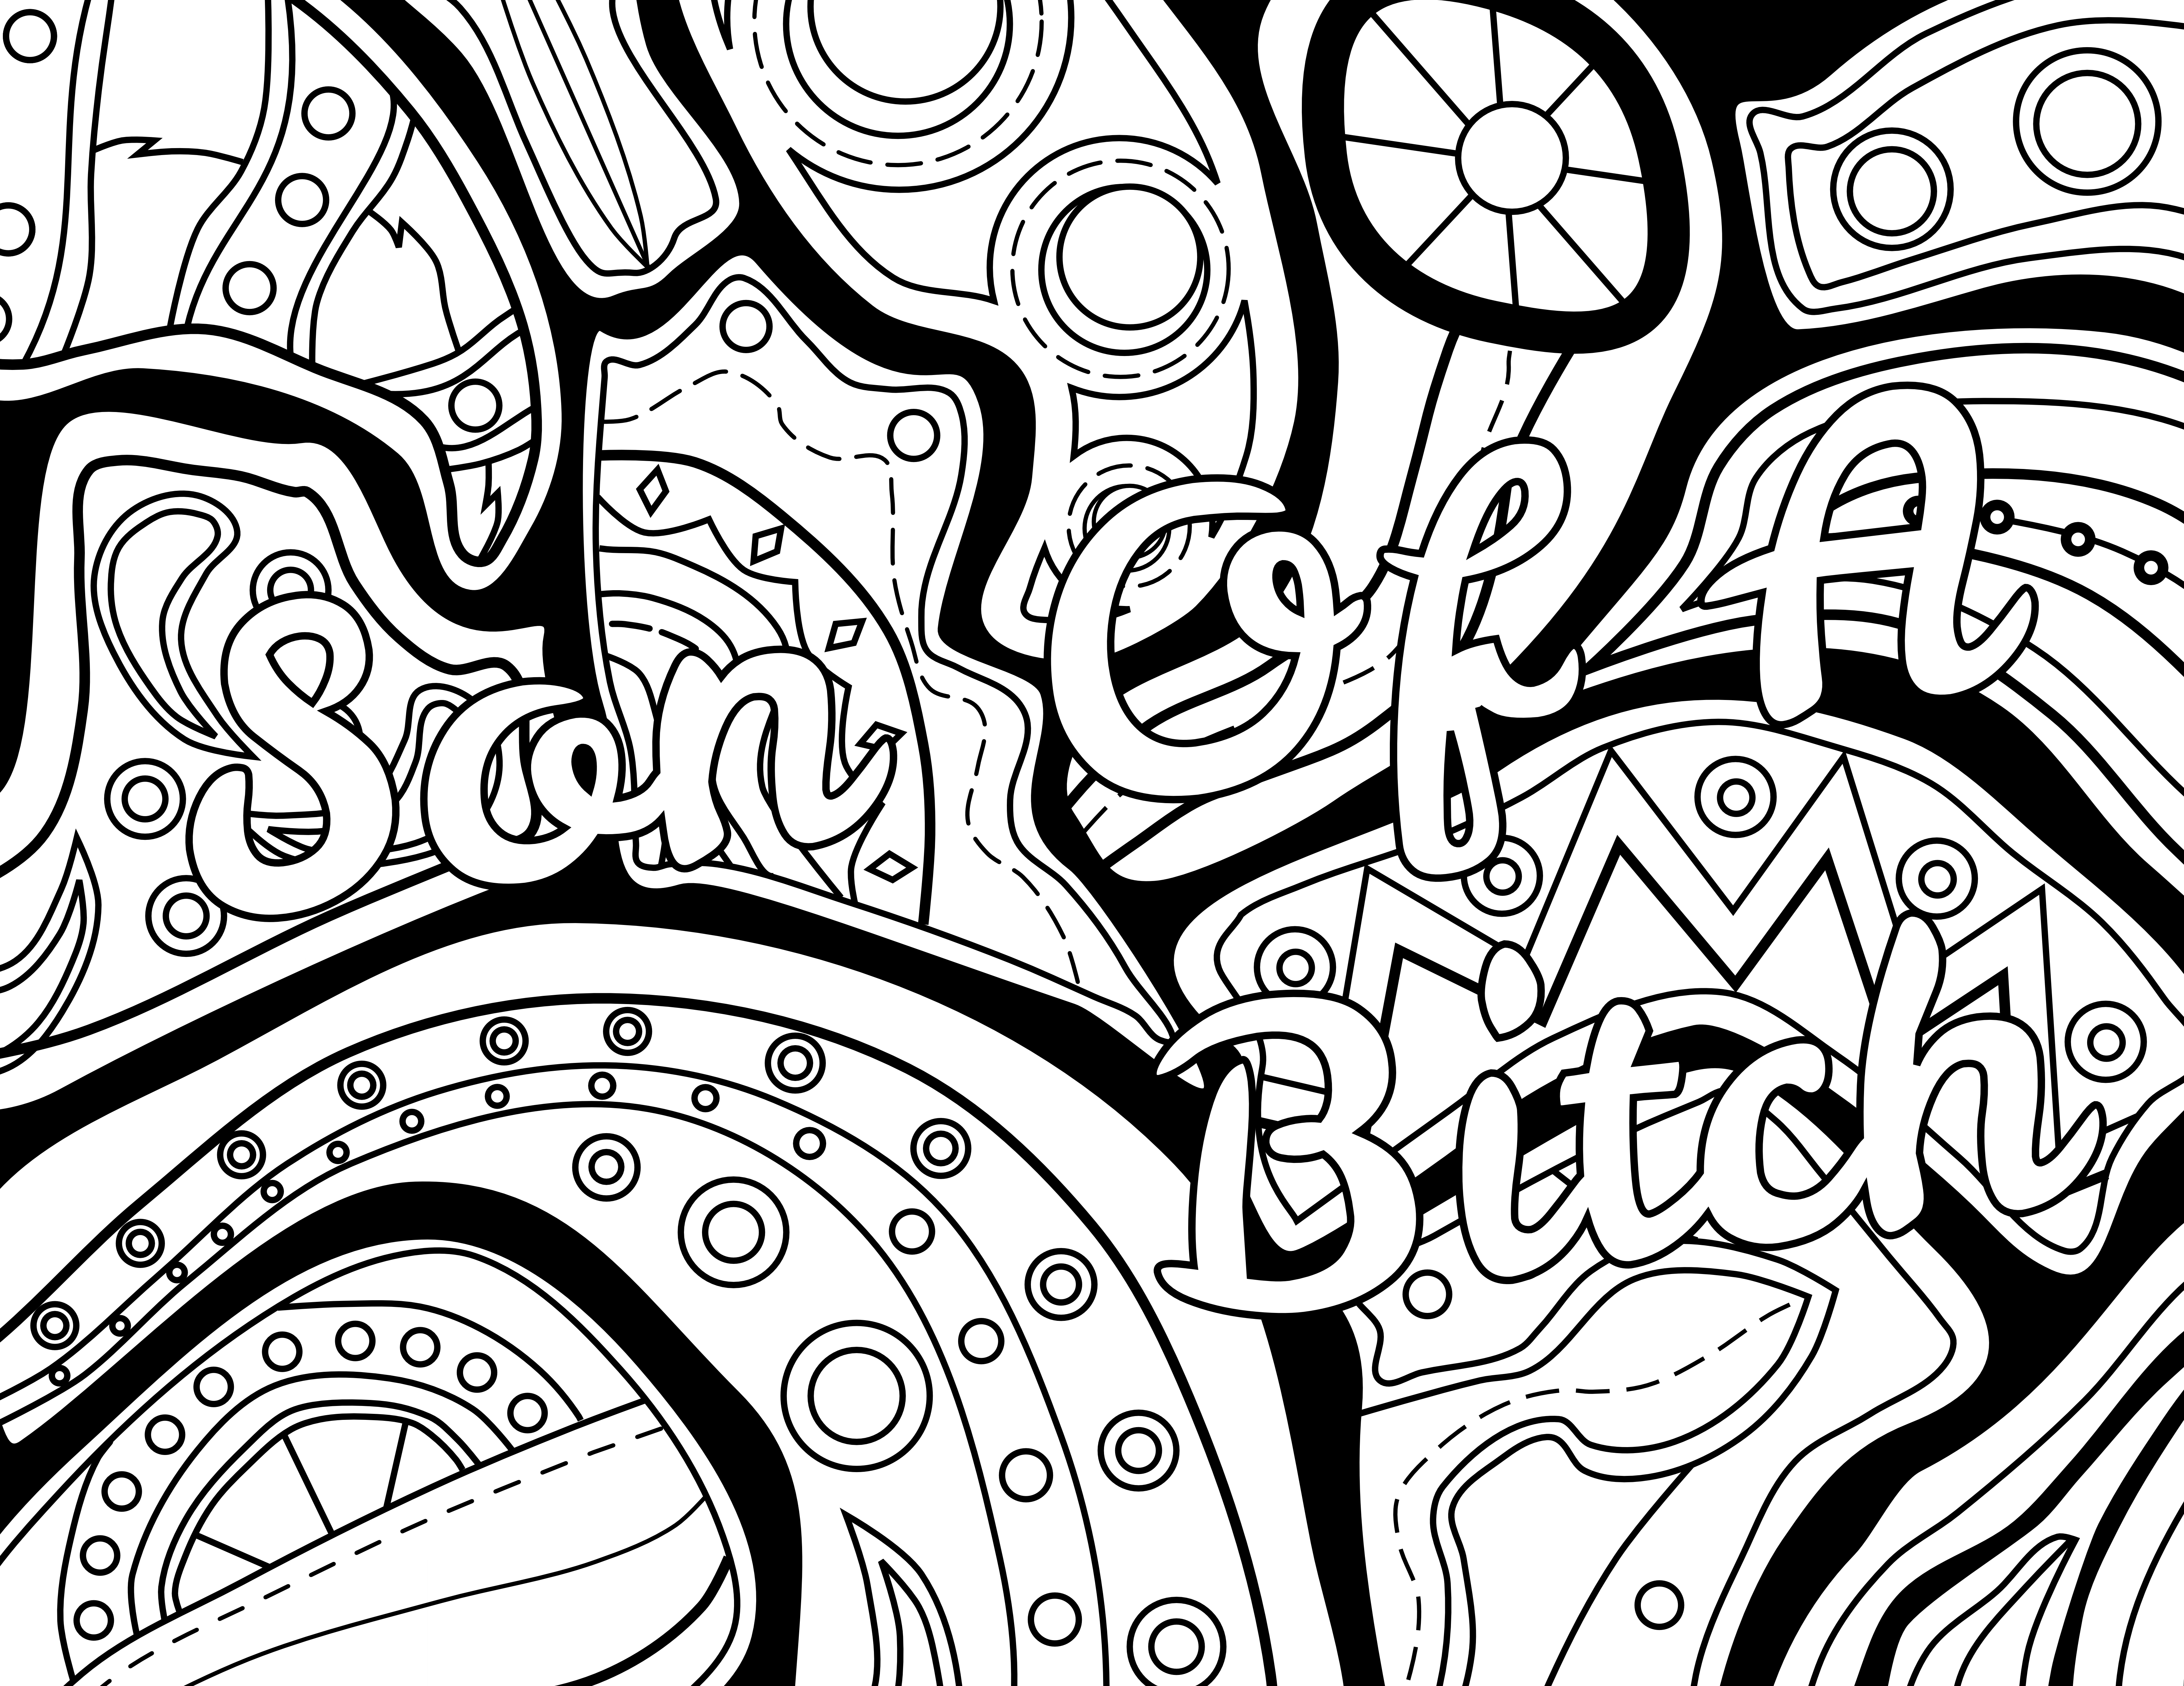 Swear word coloring book volume 1 - Son Of A Bitch Adult Coloring Page Color Swear Blackout Free Coloring Pages Comes From The Book Color Swear Blackout Available On Amazon